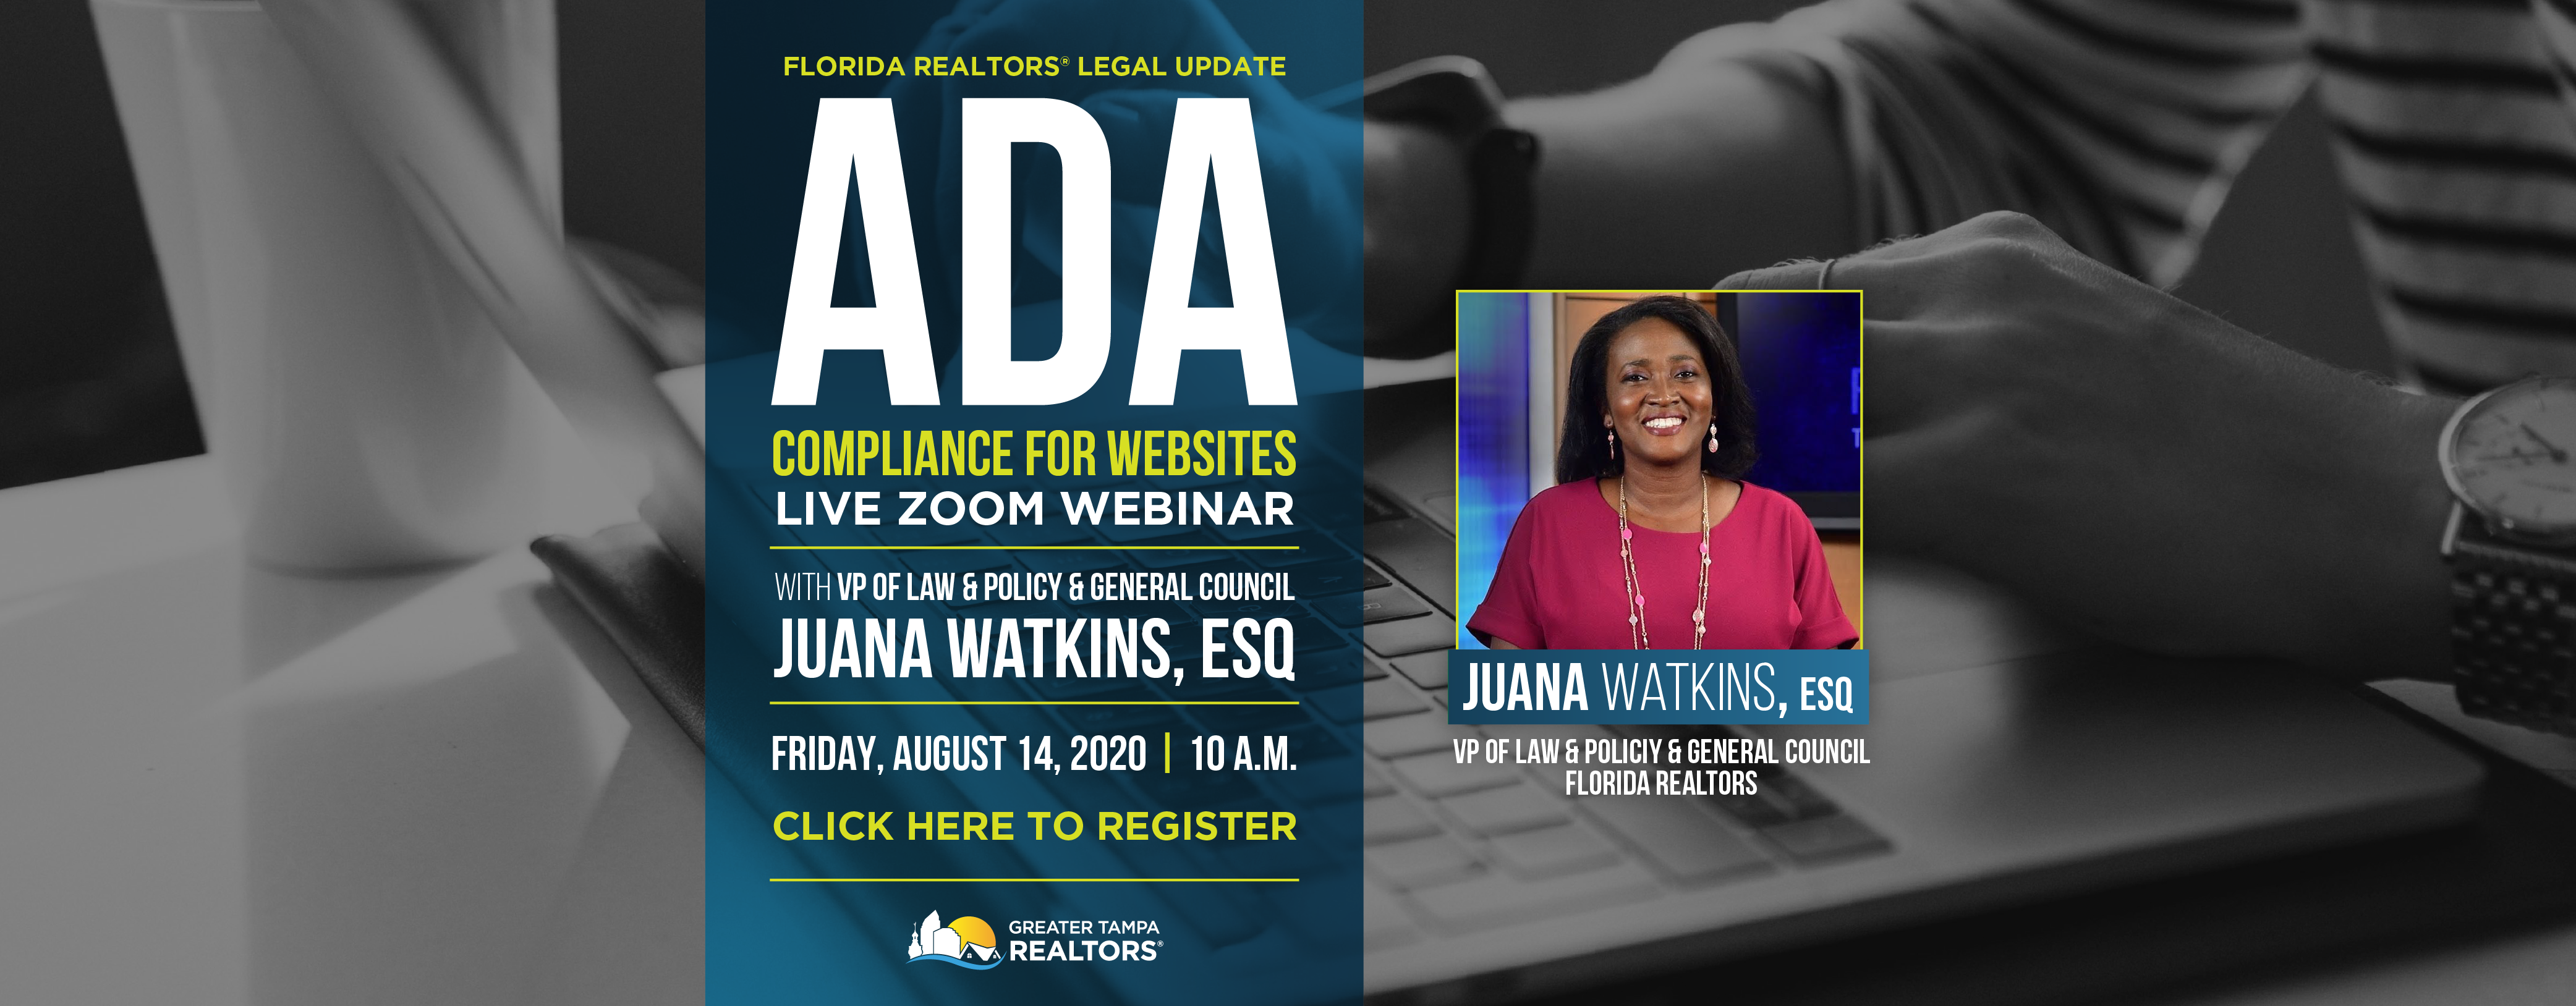 ADA Compliance for Websites Webinar with Juana Watkins on Friday, August 14 at 10 am. Click here to register